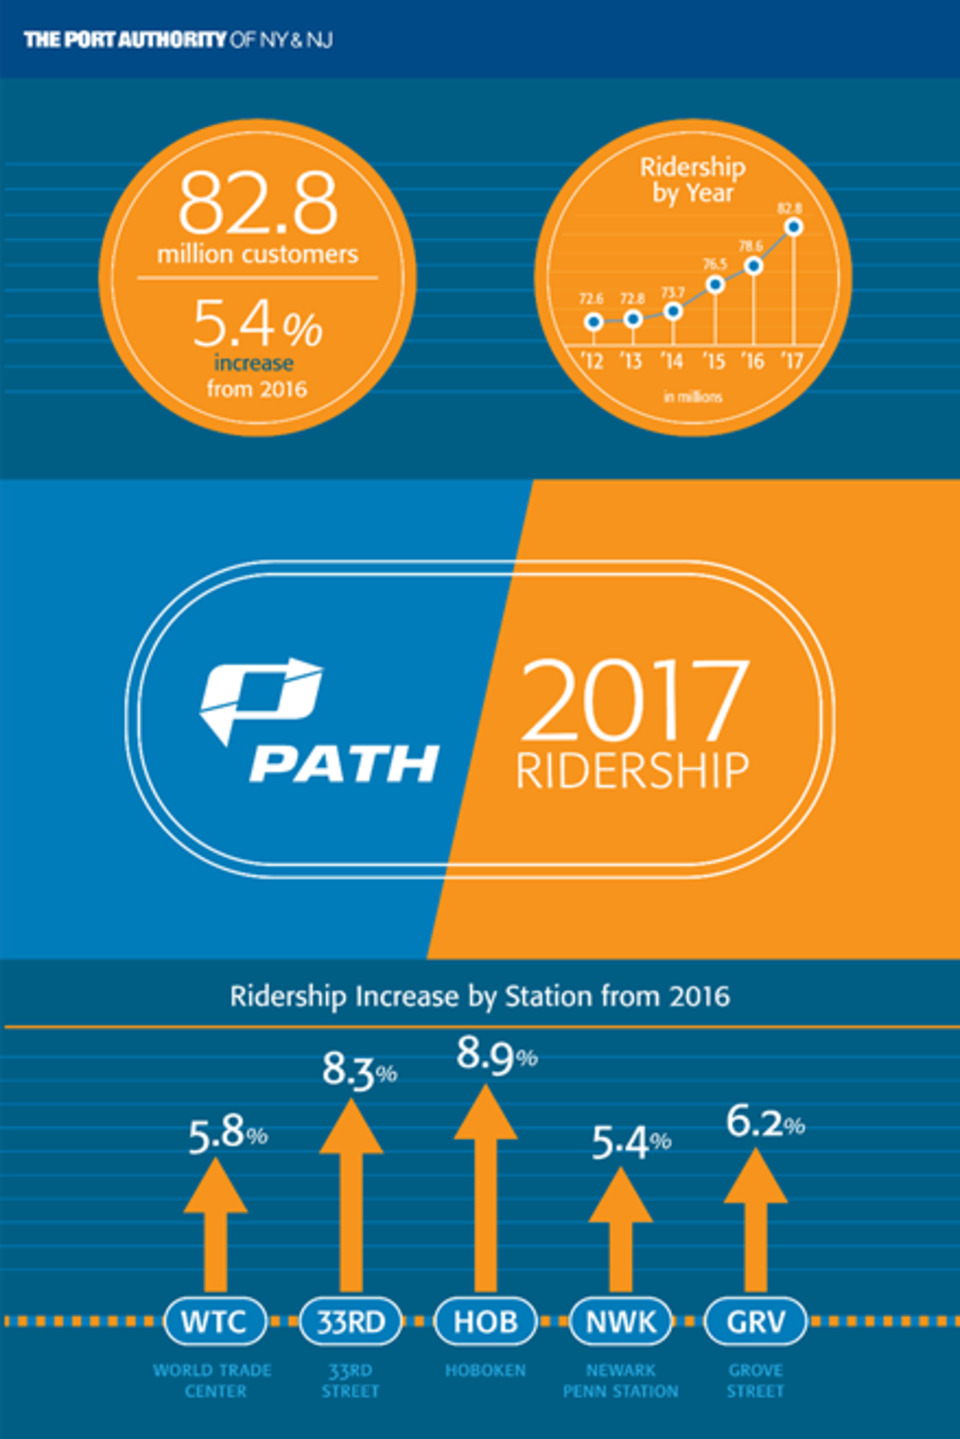 PATH Sets a New Annual Ridership Record, Serving Nearly 83